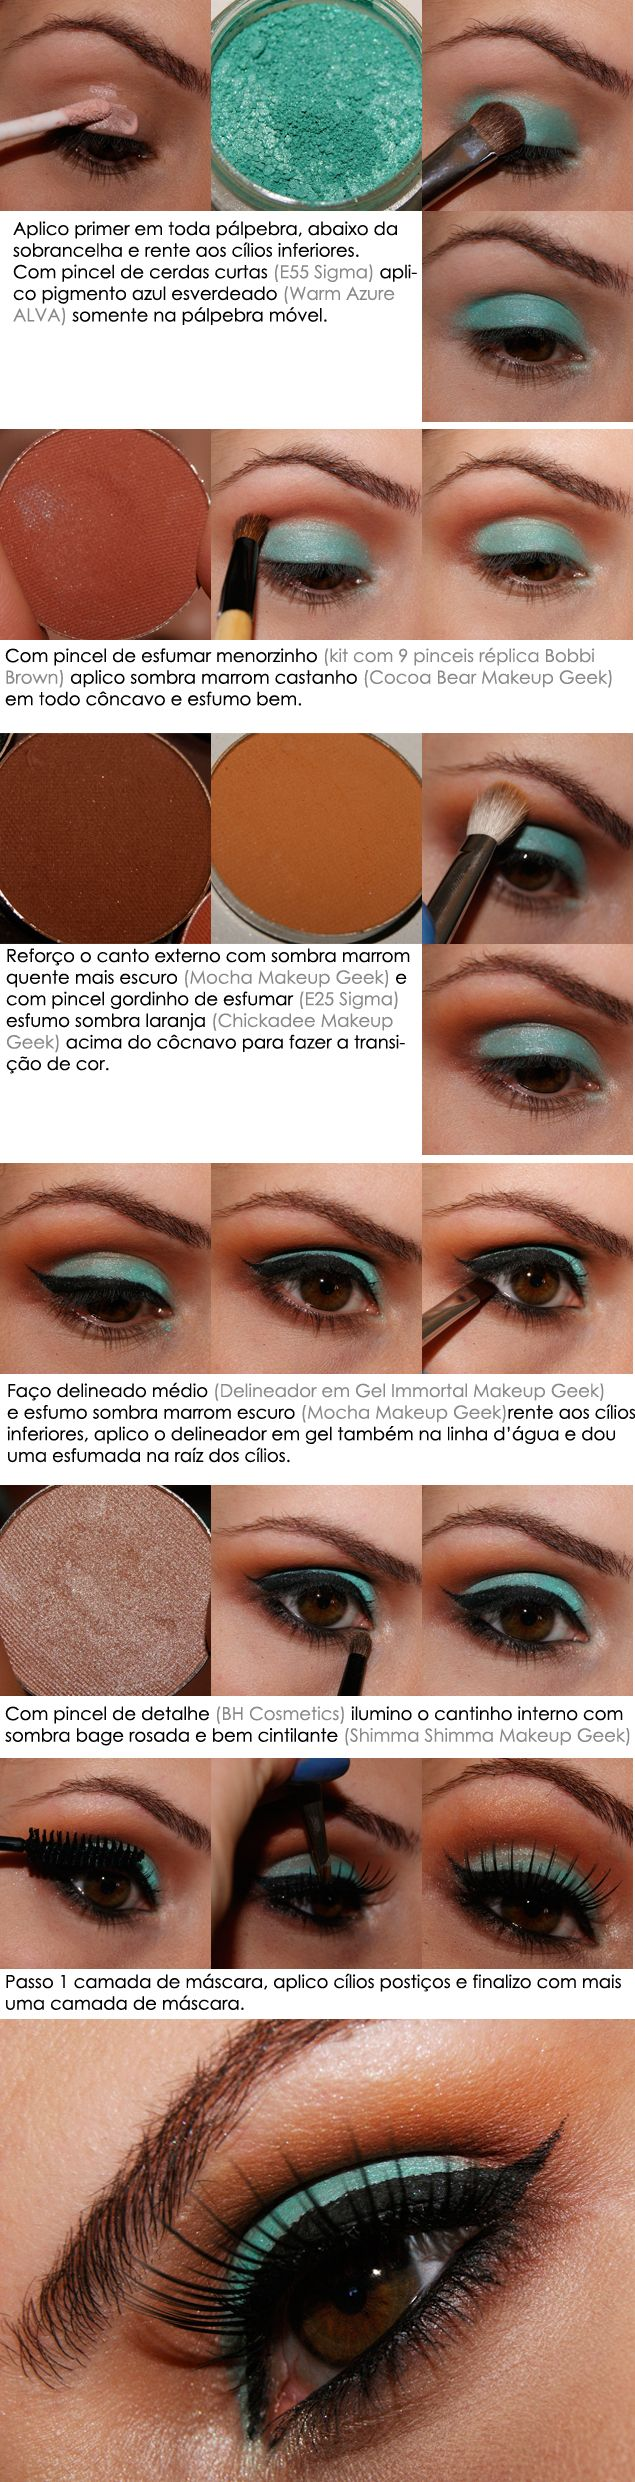 98 best How To: Beauty images on Pinterest | Makeup, Beauty tips ...